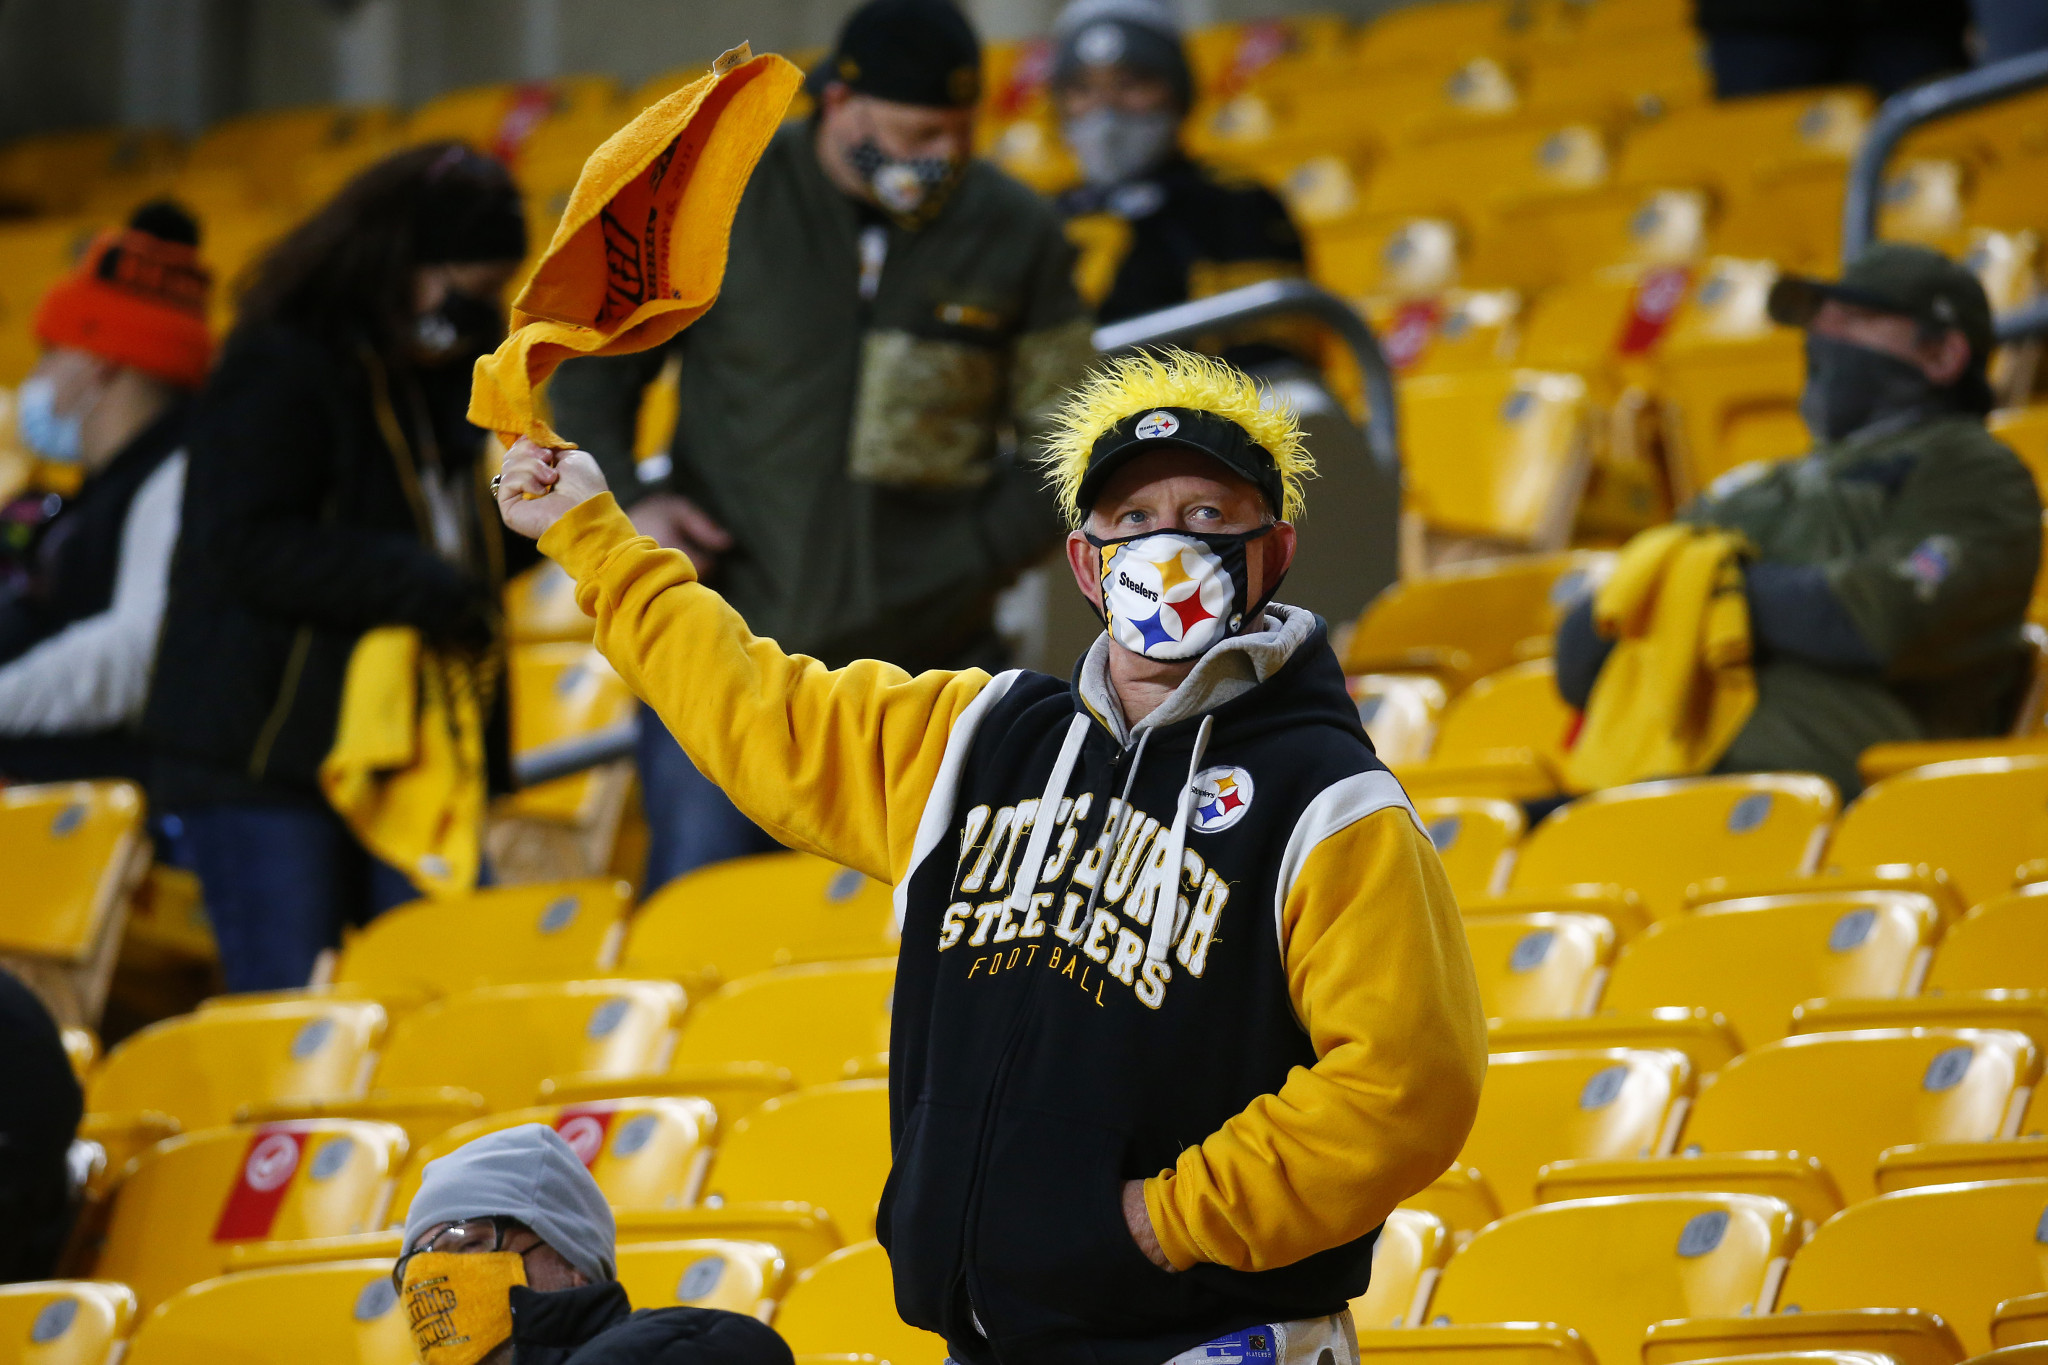 Pittsburgh Steelers' fans were allowed to attend their National Football League match against their main rivals Cincinnati Bengals earlier this month ©Getty Images